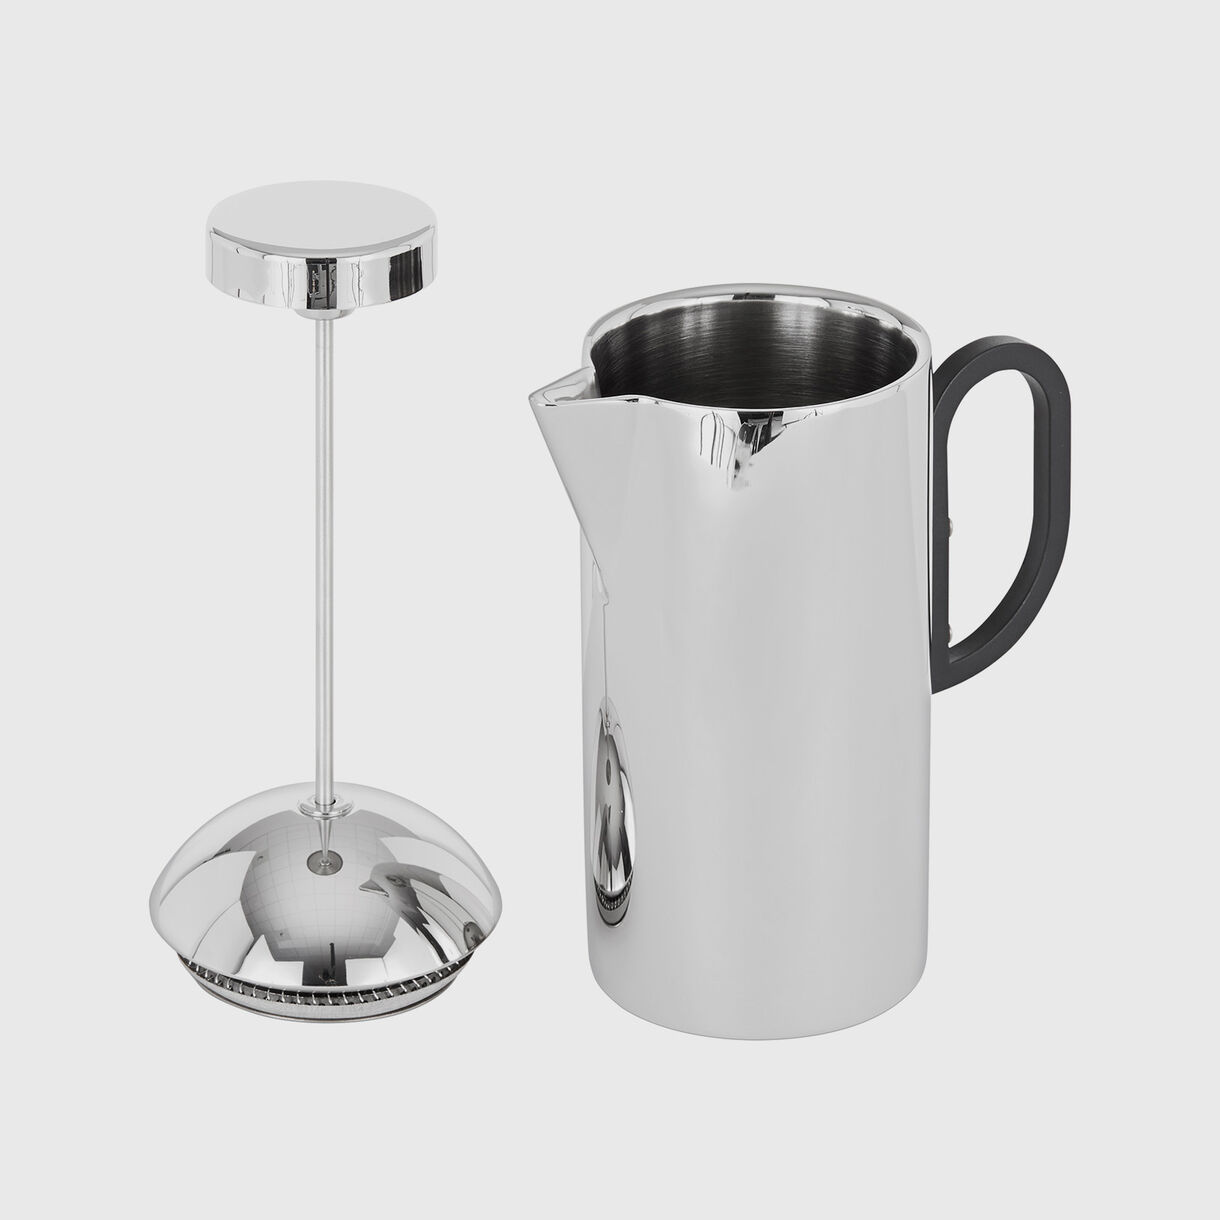 Brew Cafetiere, Chrome